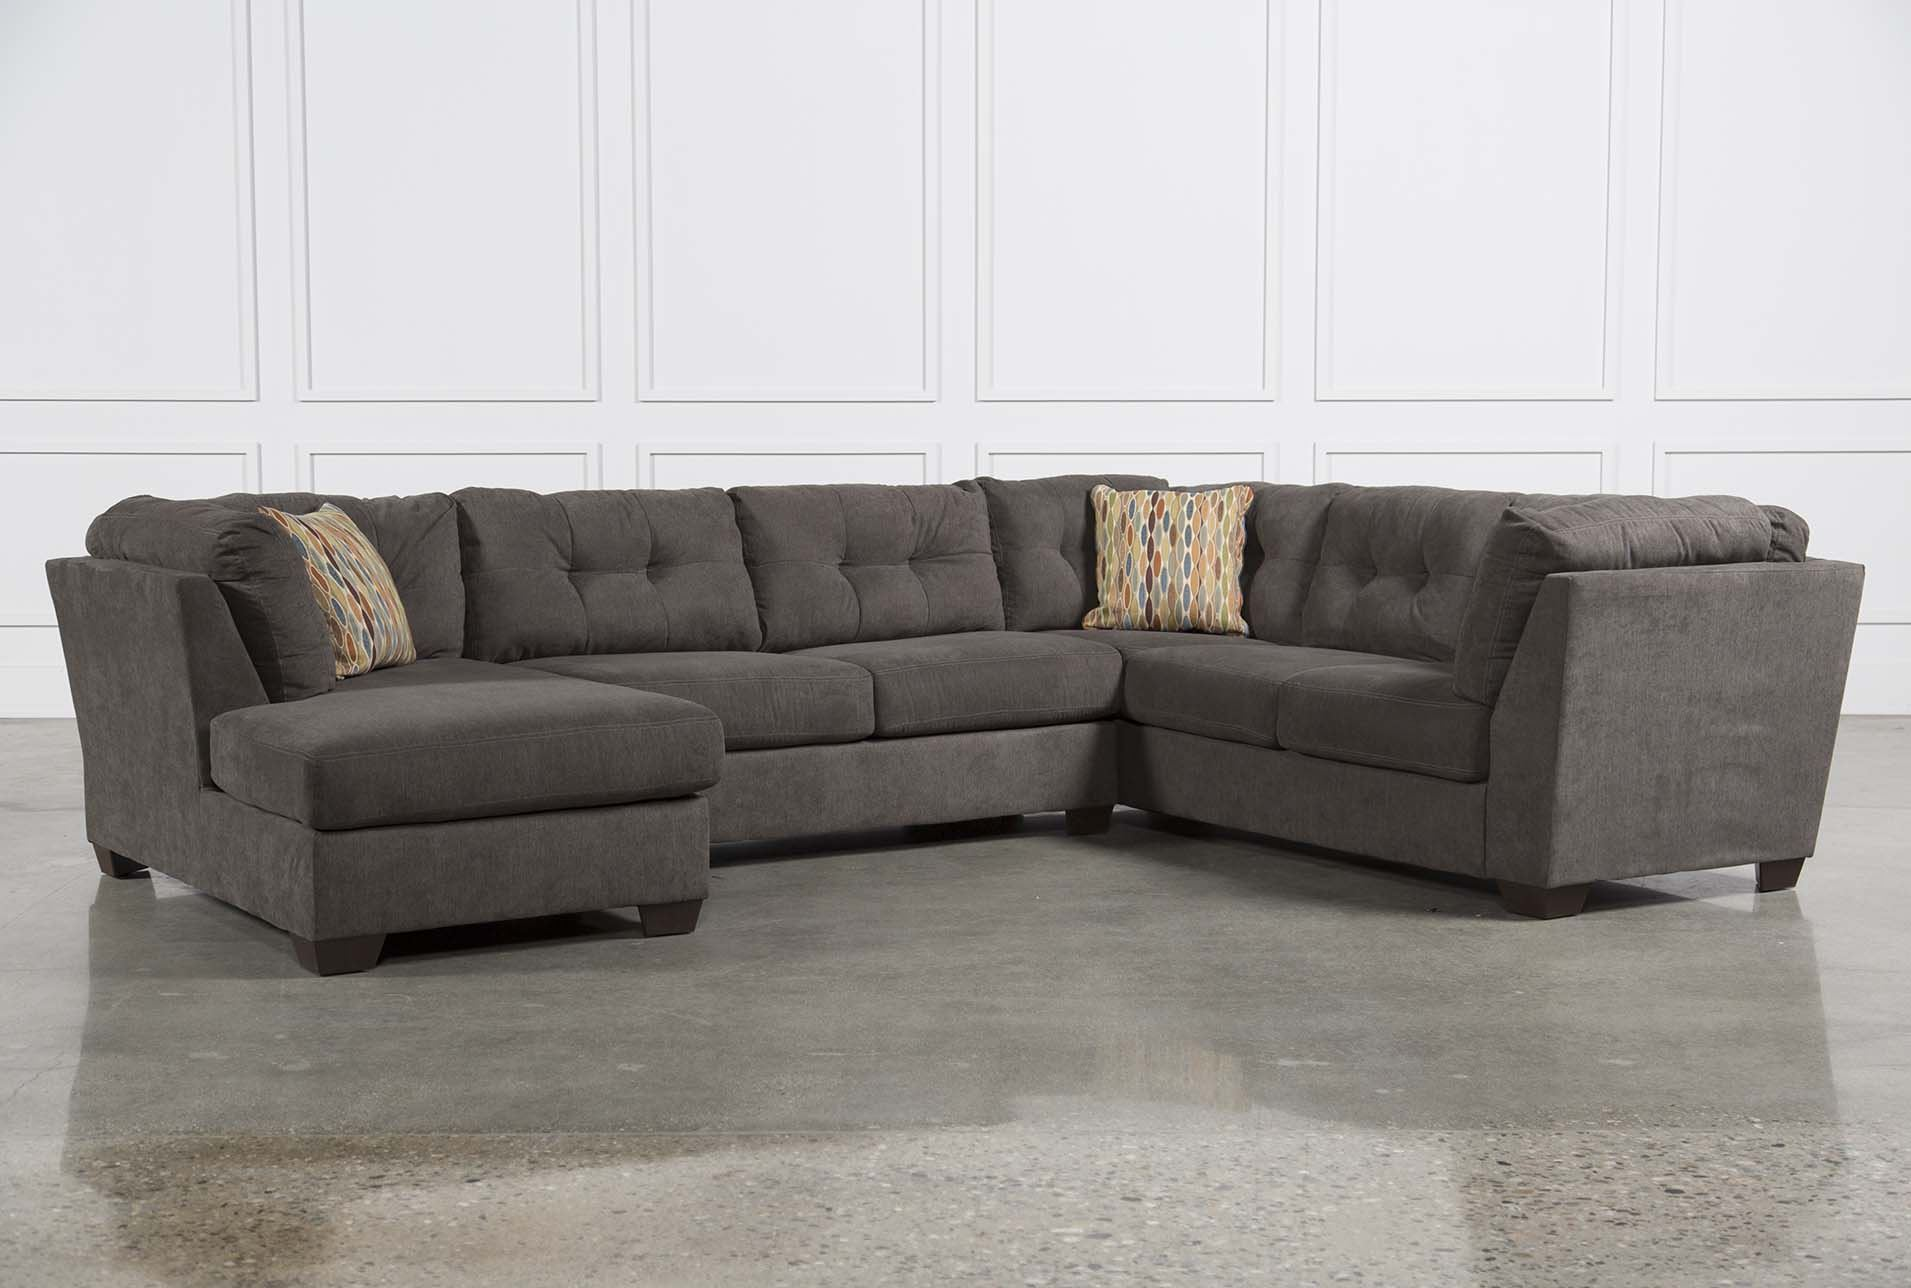 Lovely Sectional Sofas With Chaise 29 In Sofas and Couches Set with Sectional Sofas With Chaise